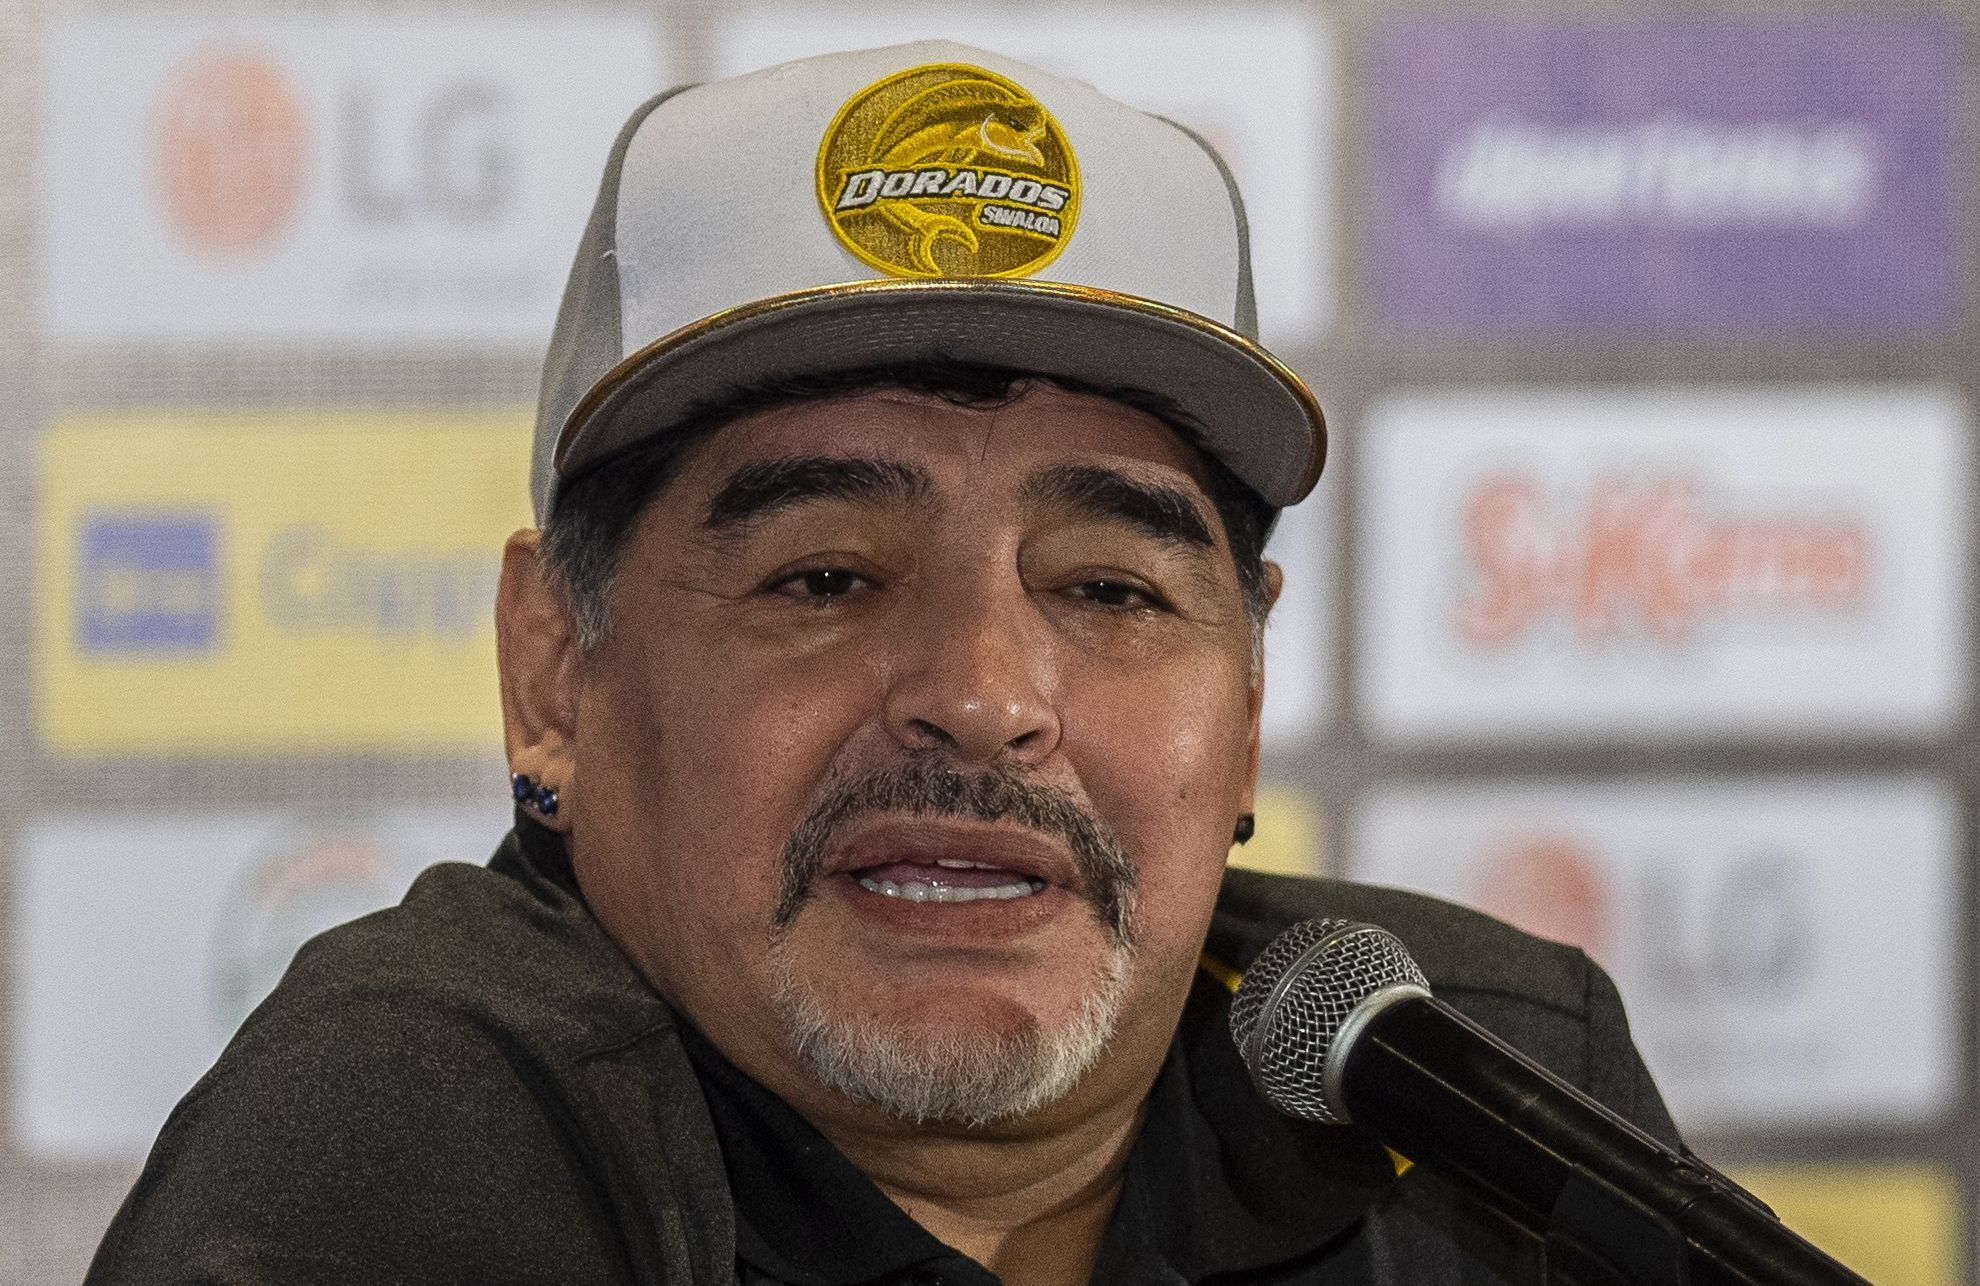 (FILES) In this file photo taken on September 10, 2018 Argentine legend Diego <HIT>Maradona</HIT> gives a press conference during his presentation as the new coach of Mexican football club Dorados, in Culiacan, Sinaloa State, Mexico. - Argentine legend Diego <HIT>Maradona</HIT> remained hospitalized on January 04, 2019 in Buenos Aires after a scheduled medical check up. According to local press, his condition is not serious. (Photo by Pedro PARDO / AFP)